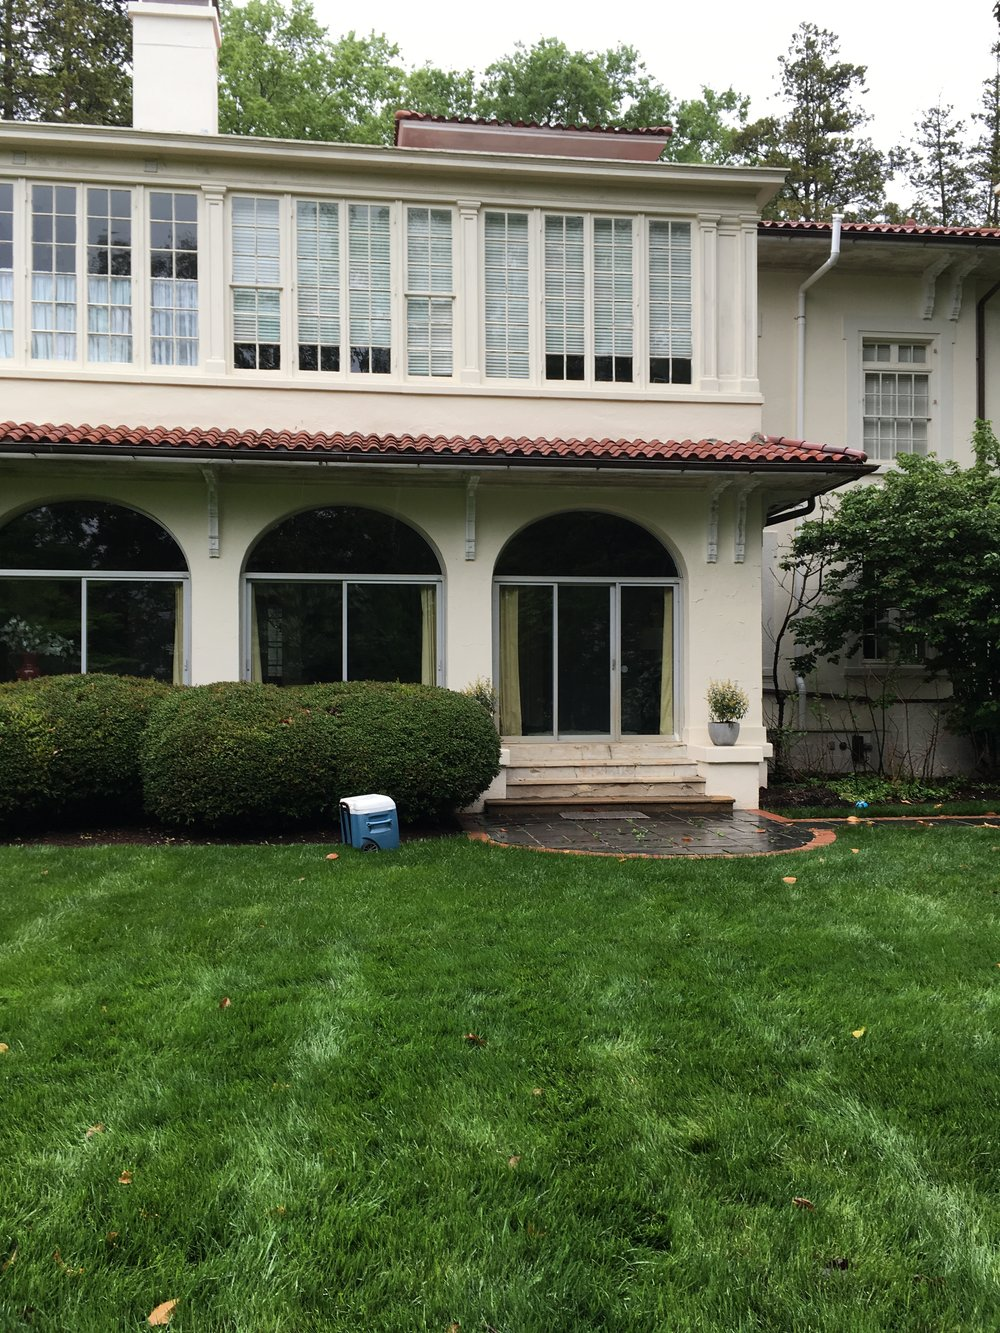 Marcia Fryer Landscape Designs | Before | Baskerville Designed Mediterranean Inspired Home | 3.JPG